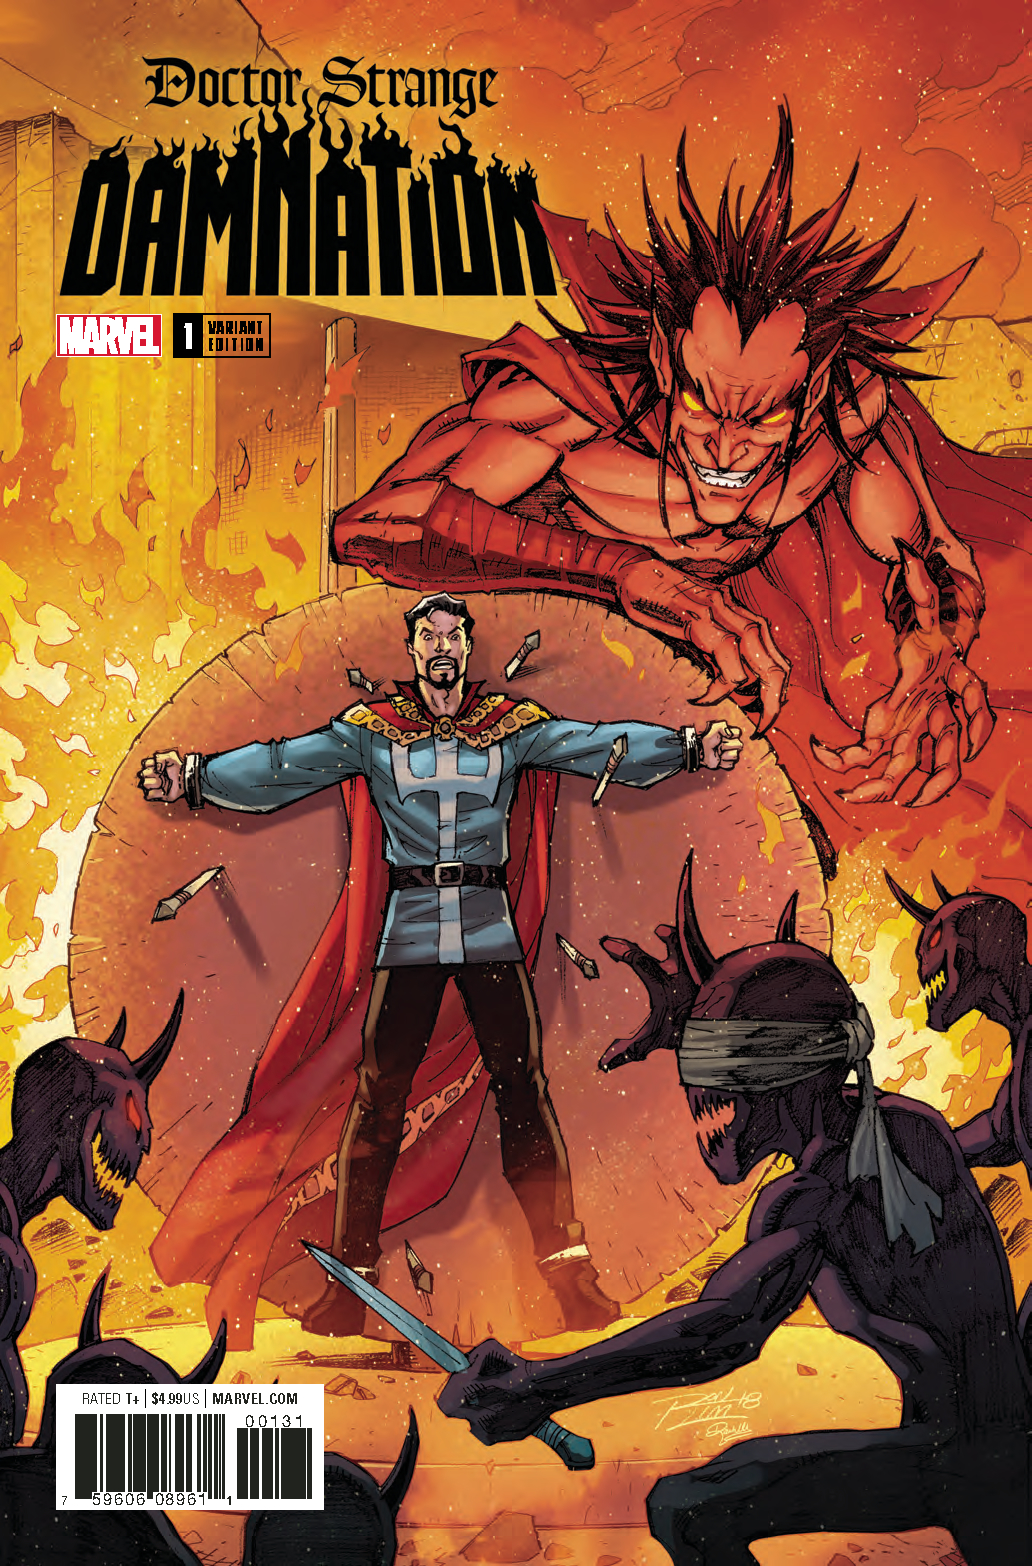 DOCTOR STRANGE DAMNATION #1 (OF 4) LIM VAR LEG